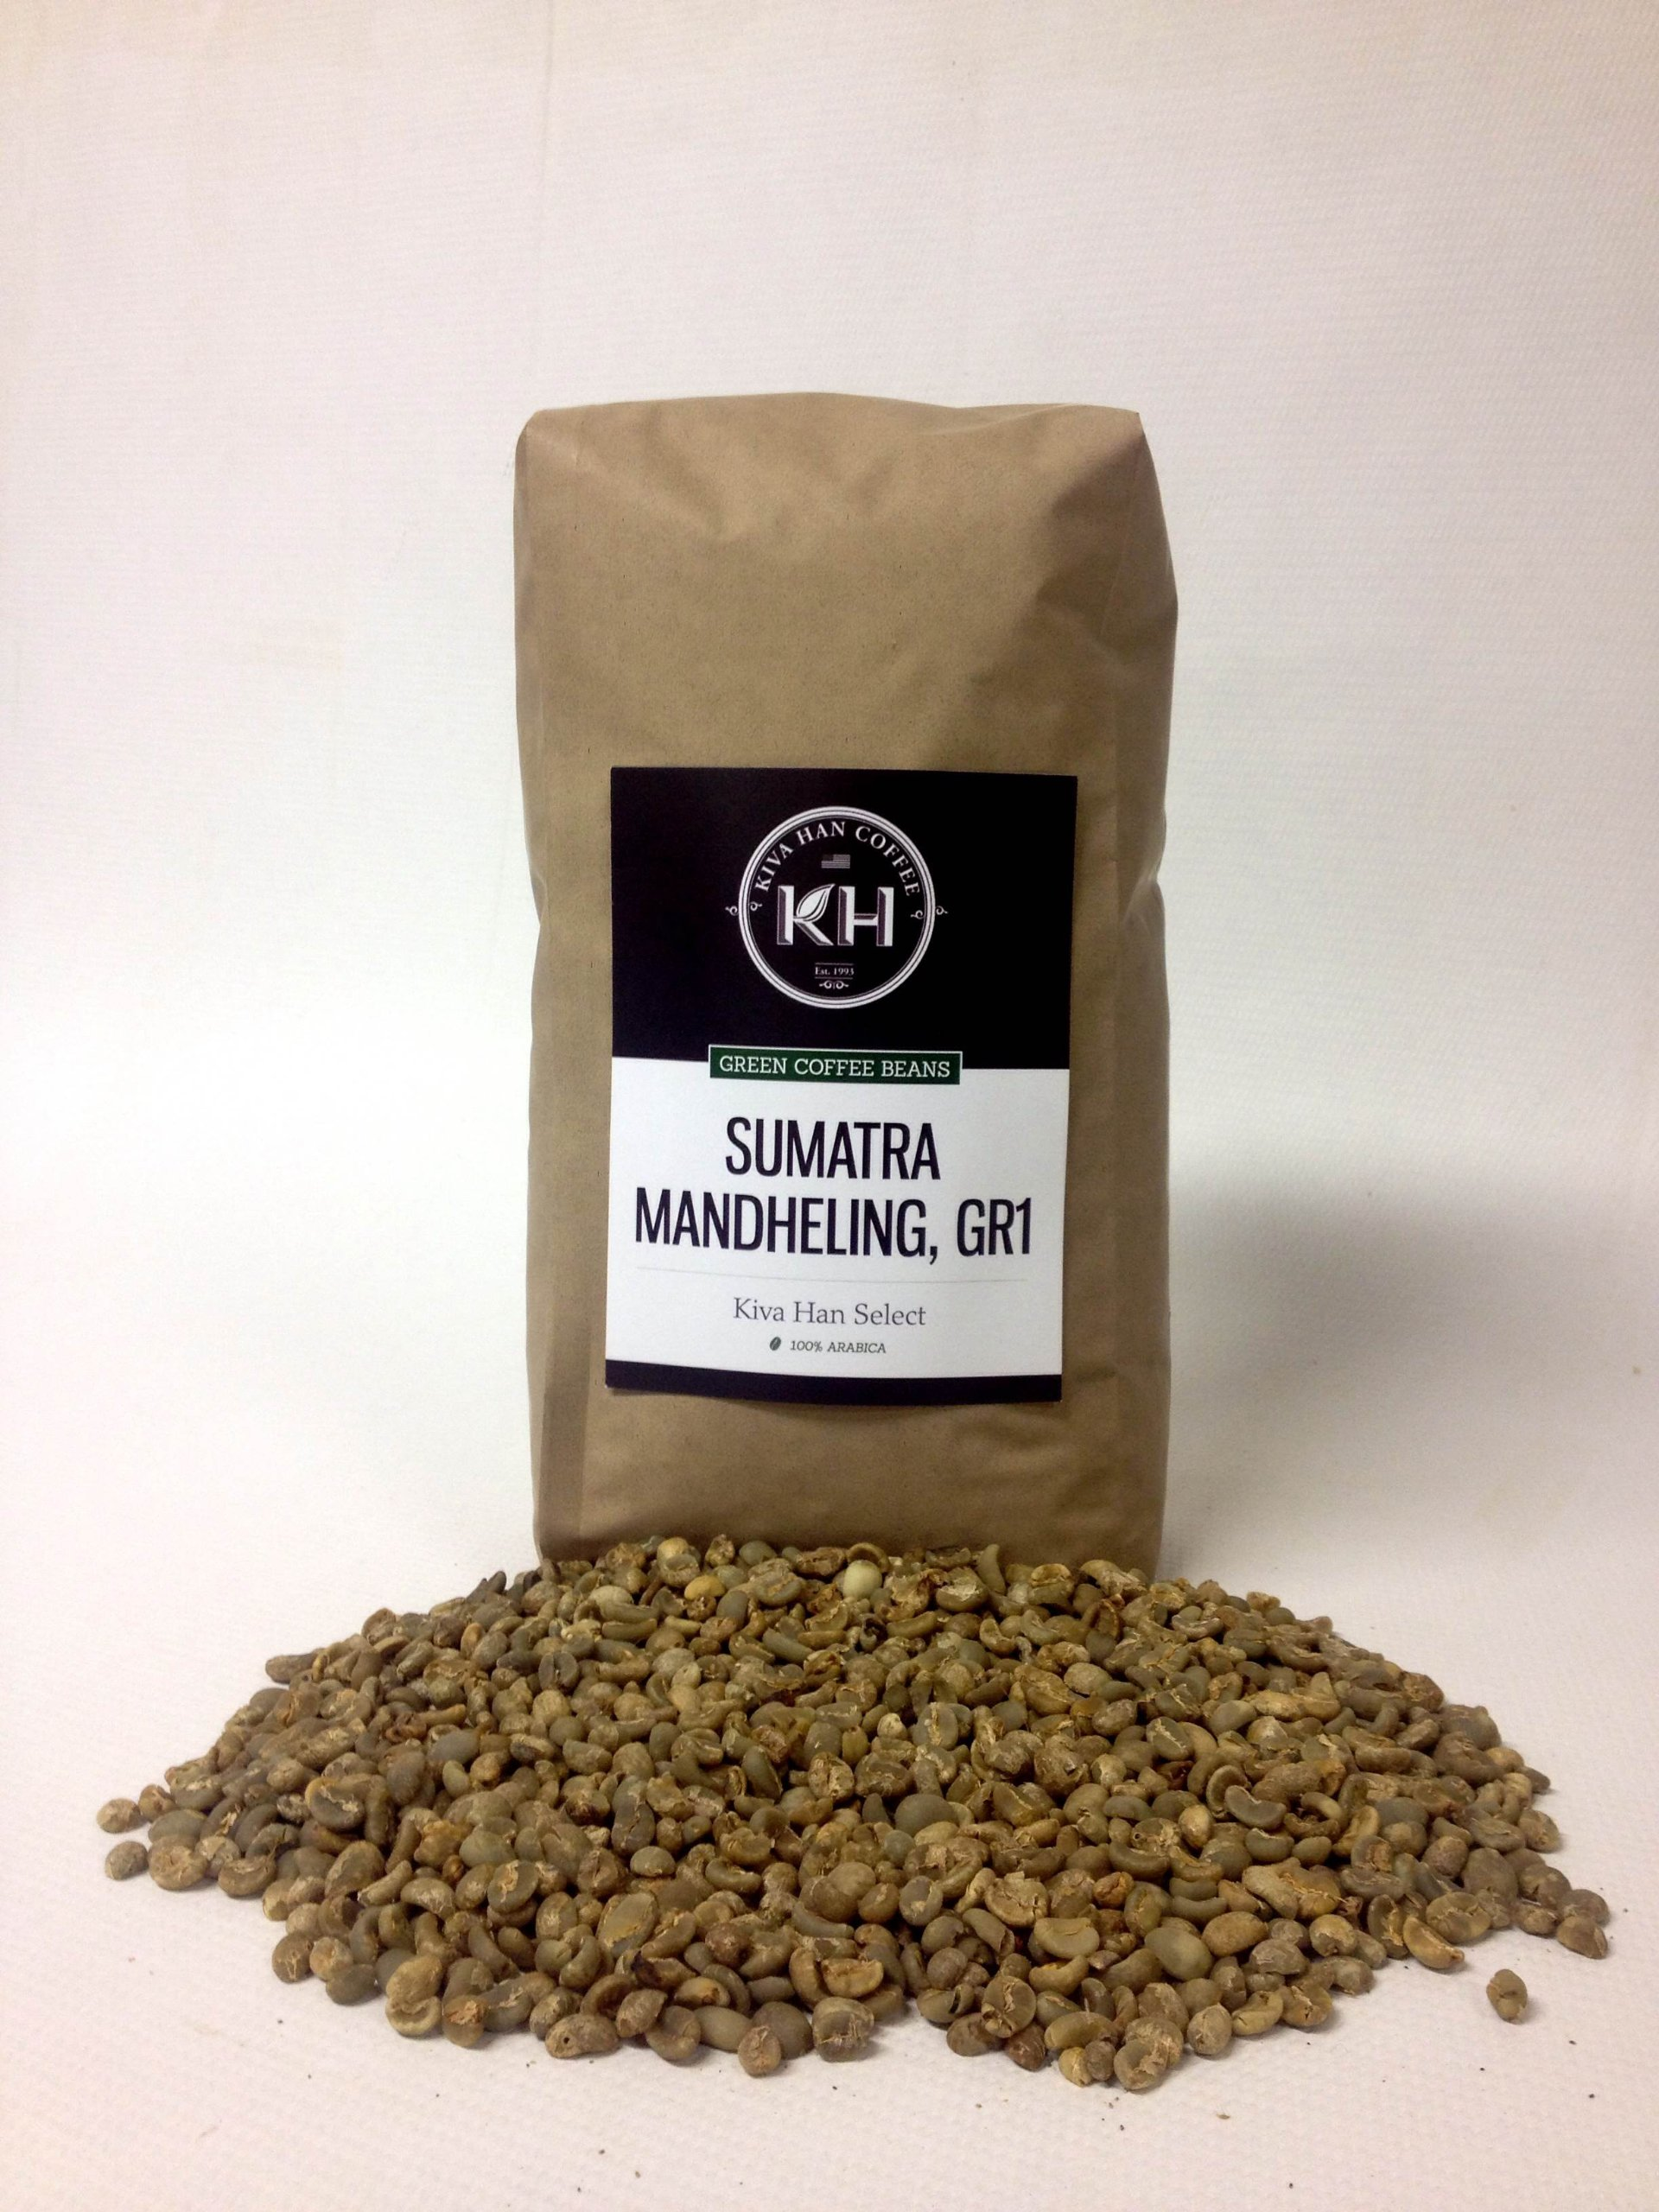 Sumatra Mandheling, Gr1 Green Unroasted Coffee Beans, 5 Lb Bag